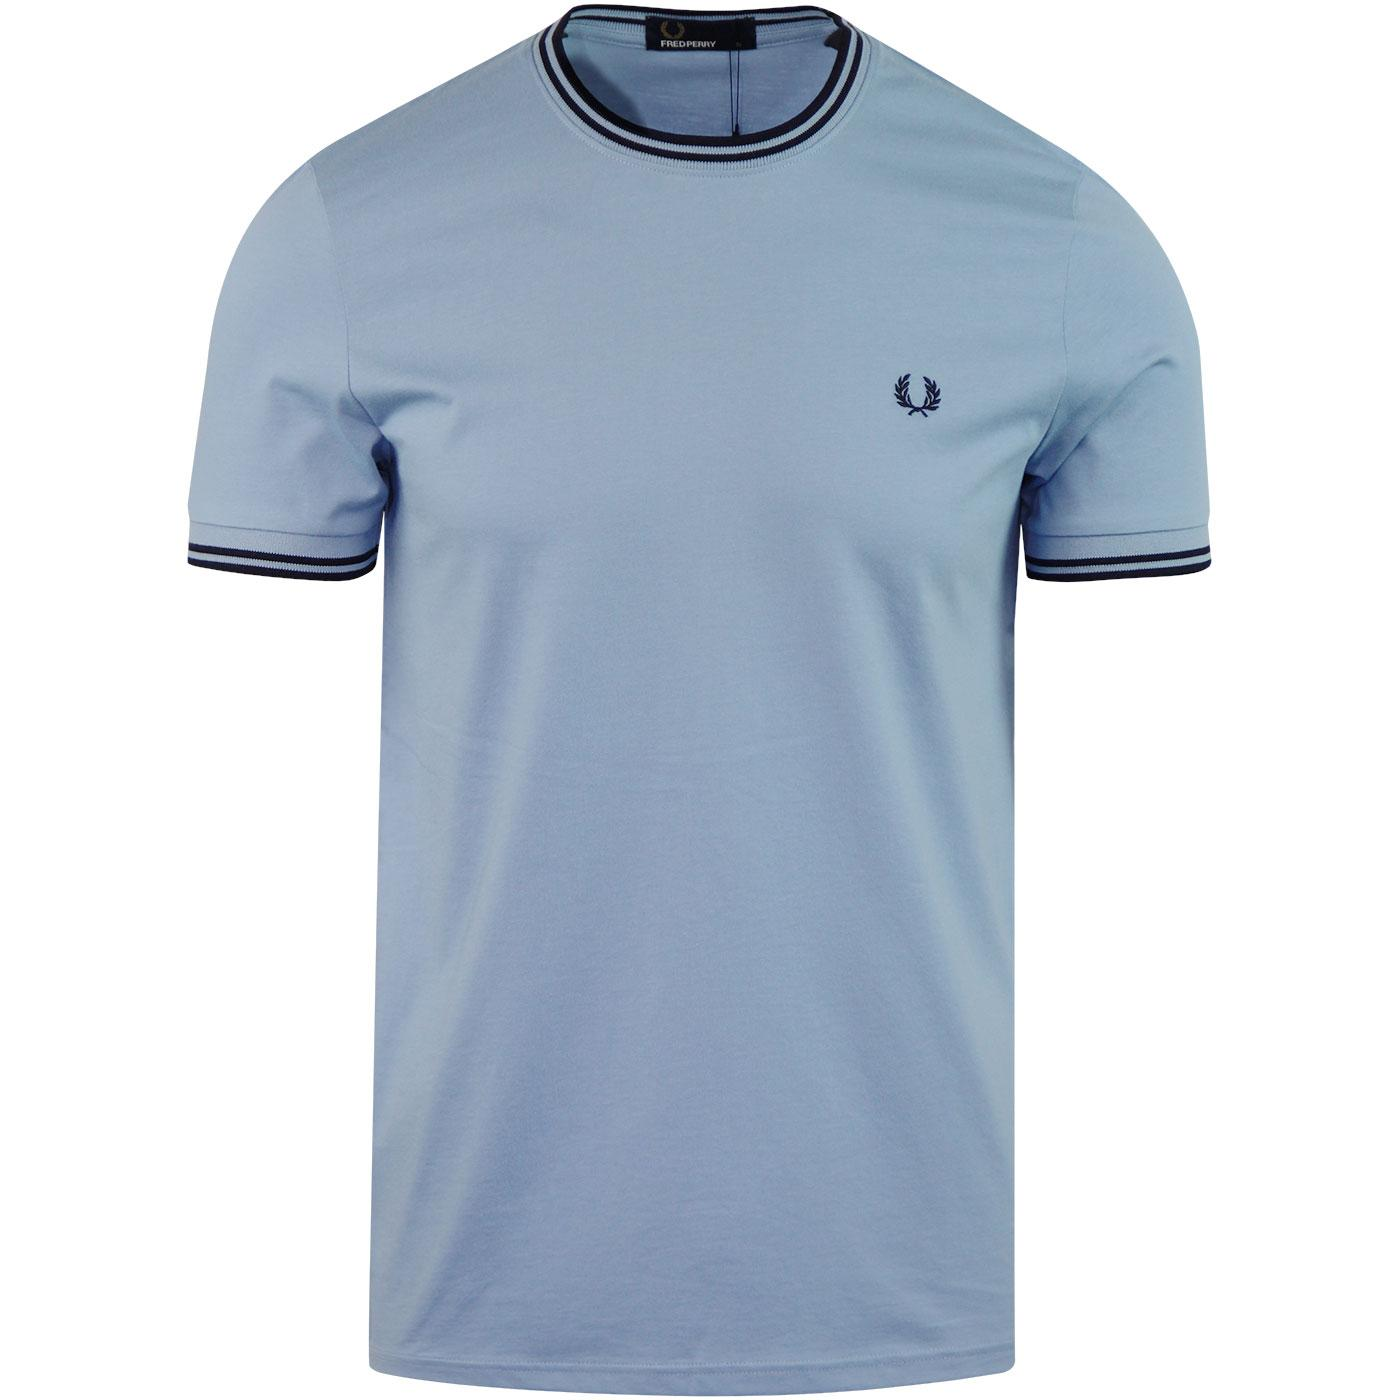 FRED PERRY Retro Mod Twin Tipped Crew T-shirt SKY